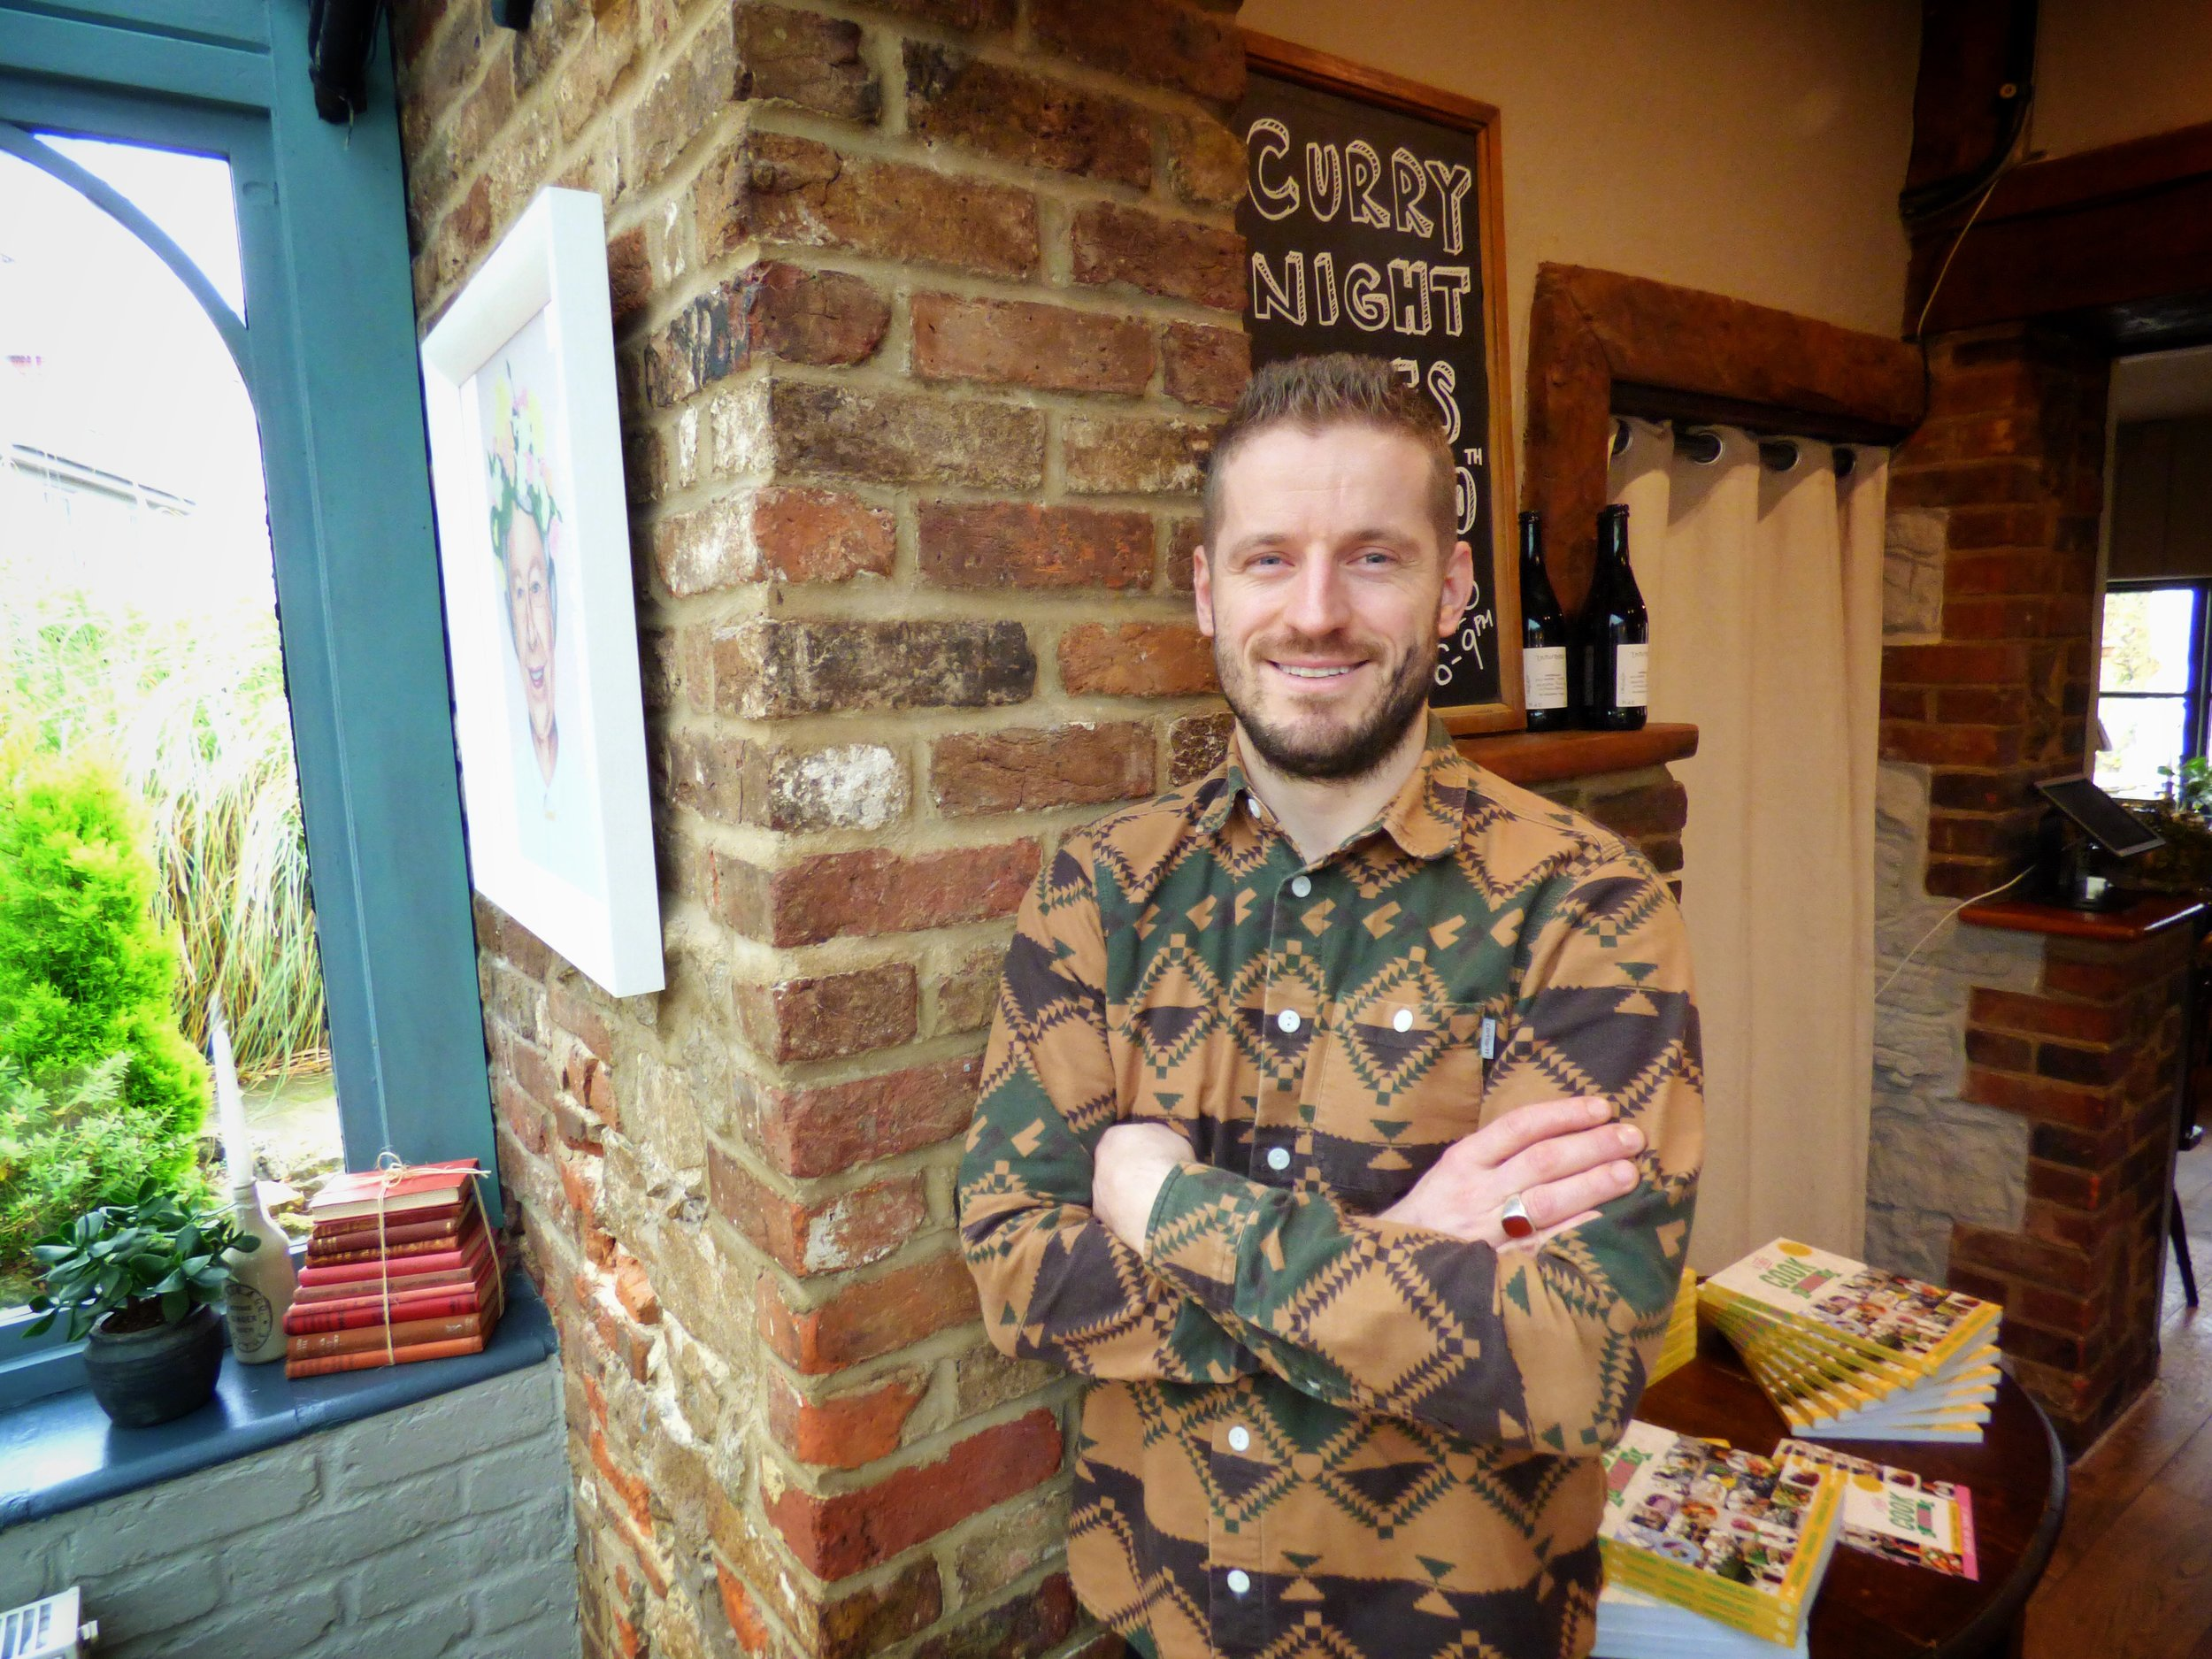 Dale Bentley - Hailing from Leeds, Dale's culinary journey began in Australia, where he worked for artisan coffee company Santos in Sydney. He's since done everything from cafés and pubs to fine-dining,followed by a stint at London brunch venue Milk. He lives and breathes hospitality, launching Rafferty's in Sevenoaks, then joining James to bring his passion project of The Plough to life.